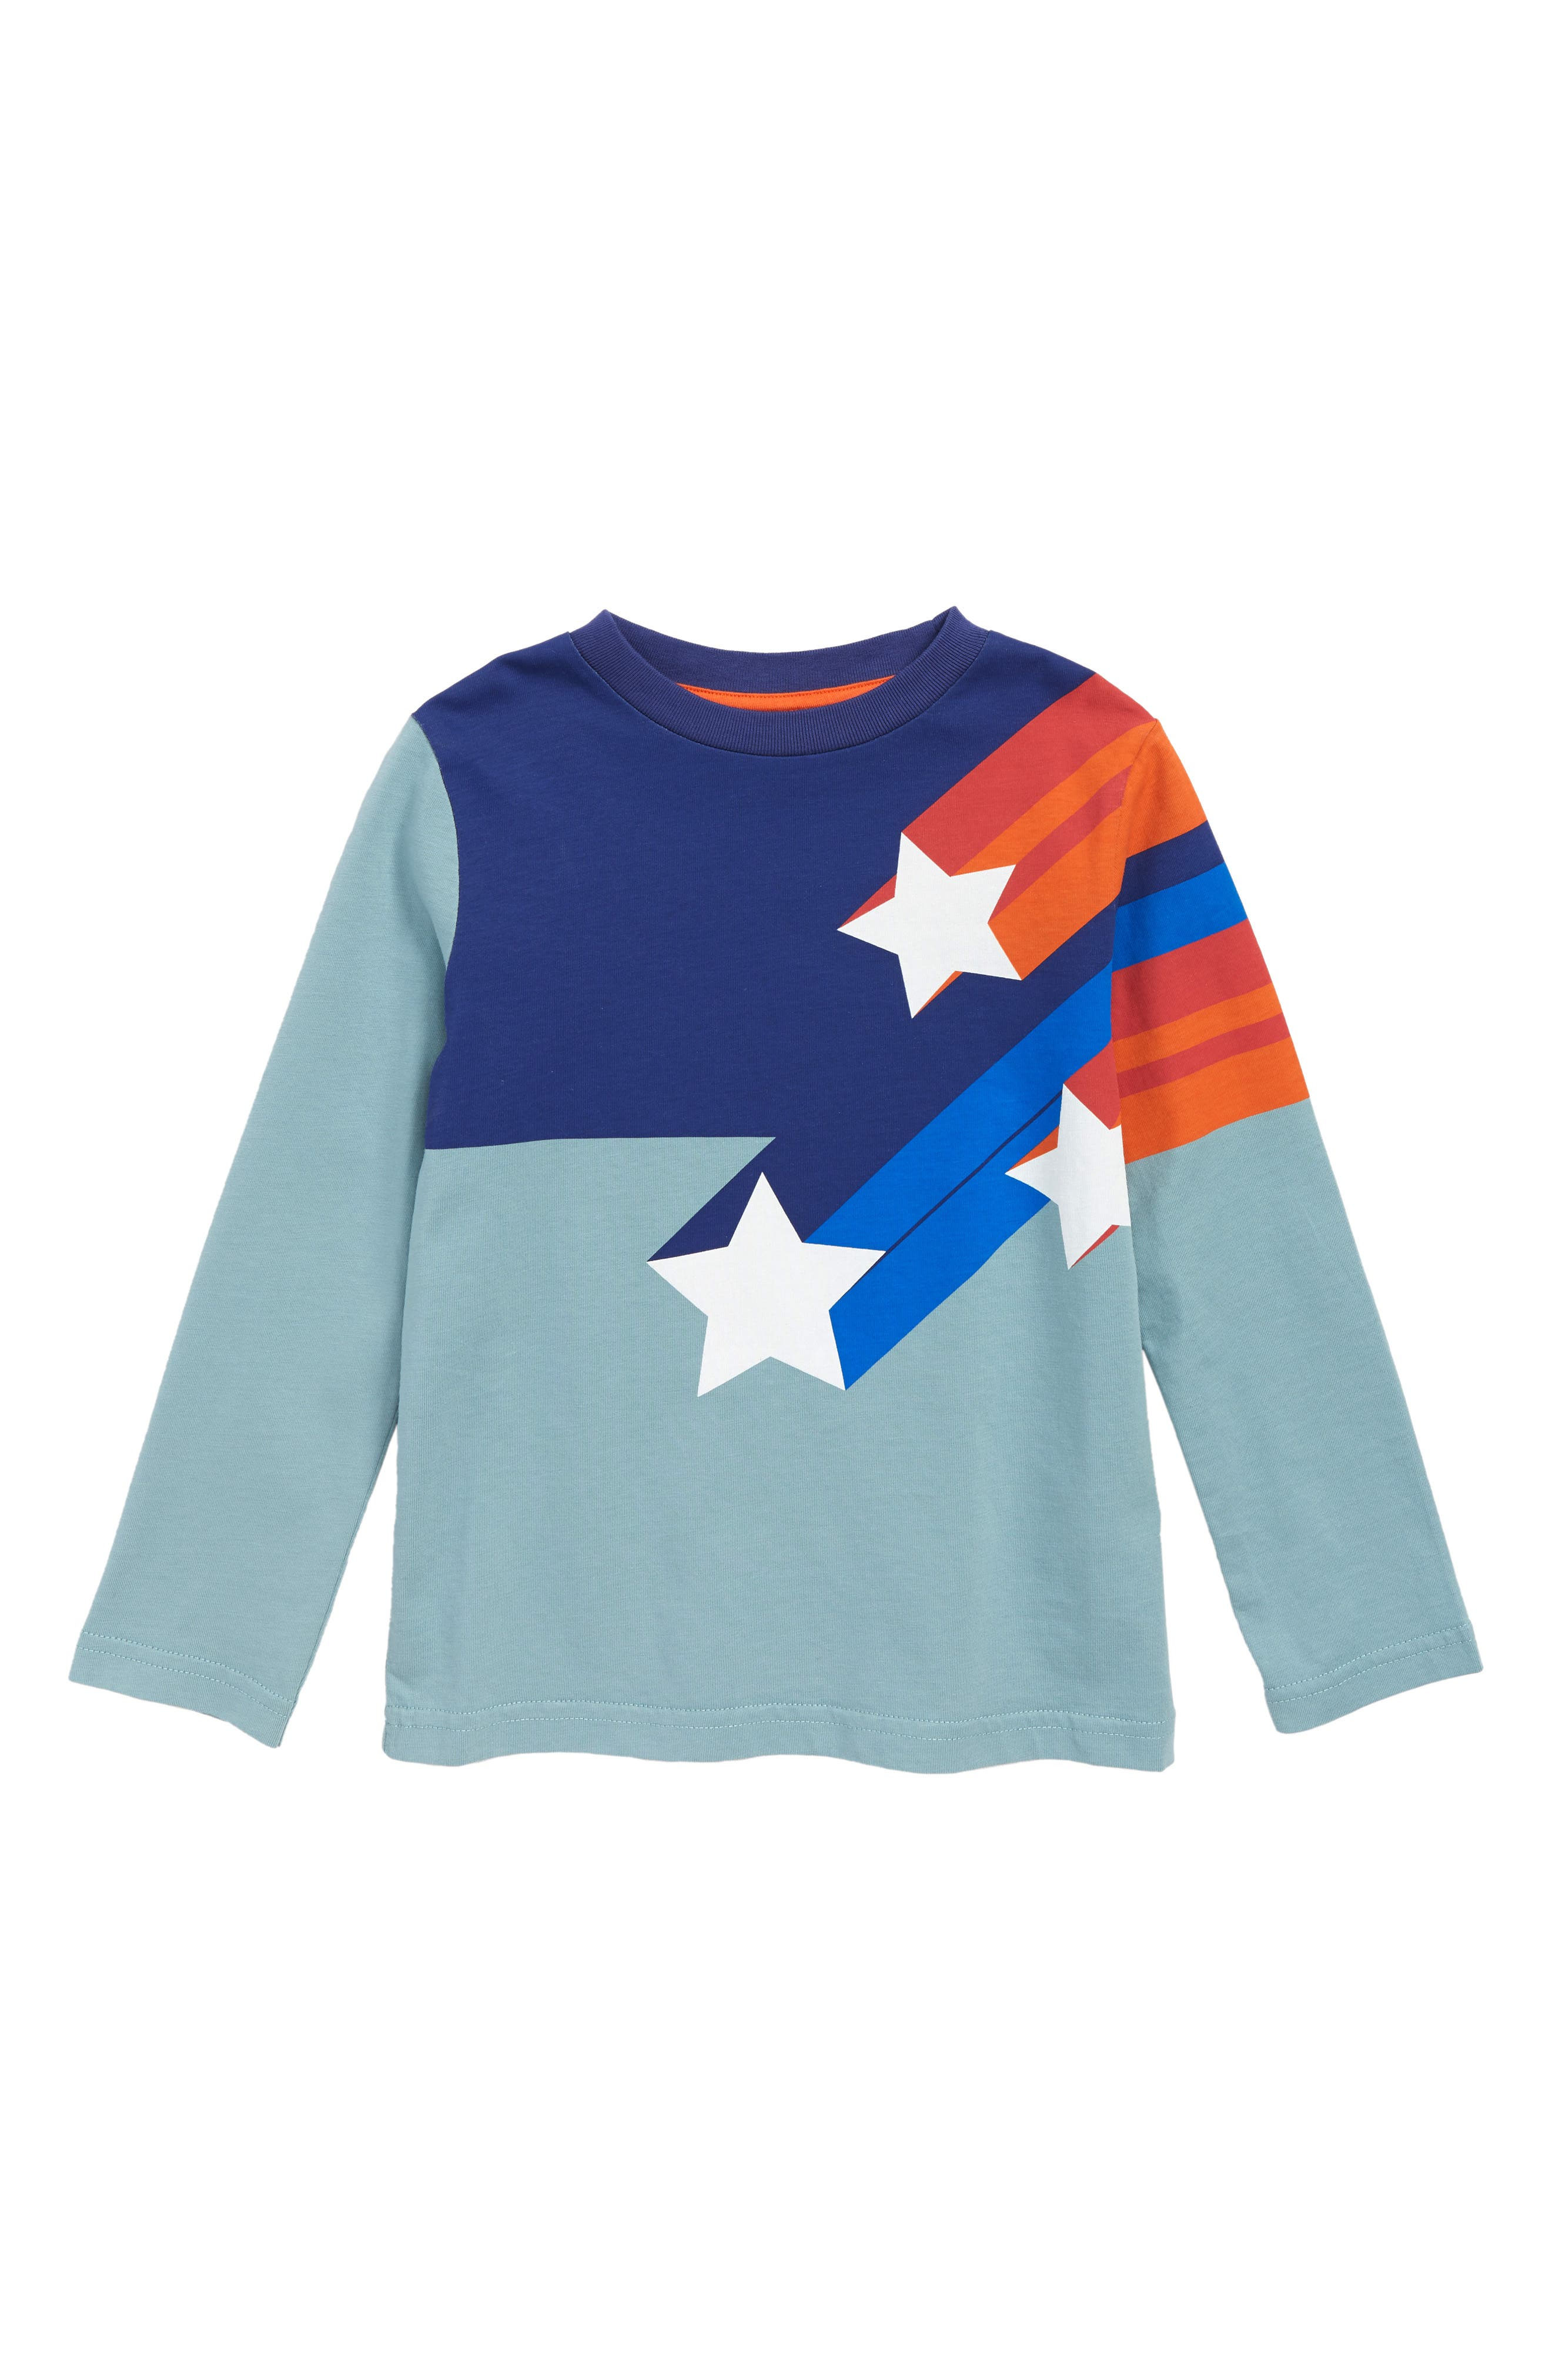 Shooting Stars Superstar T-Shirt,                         Main,                         color, 424